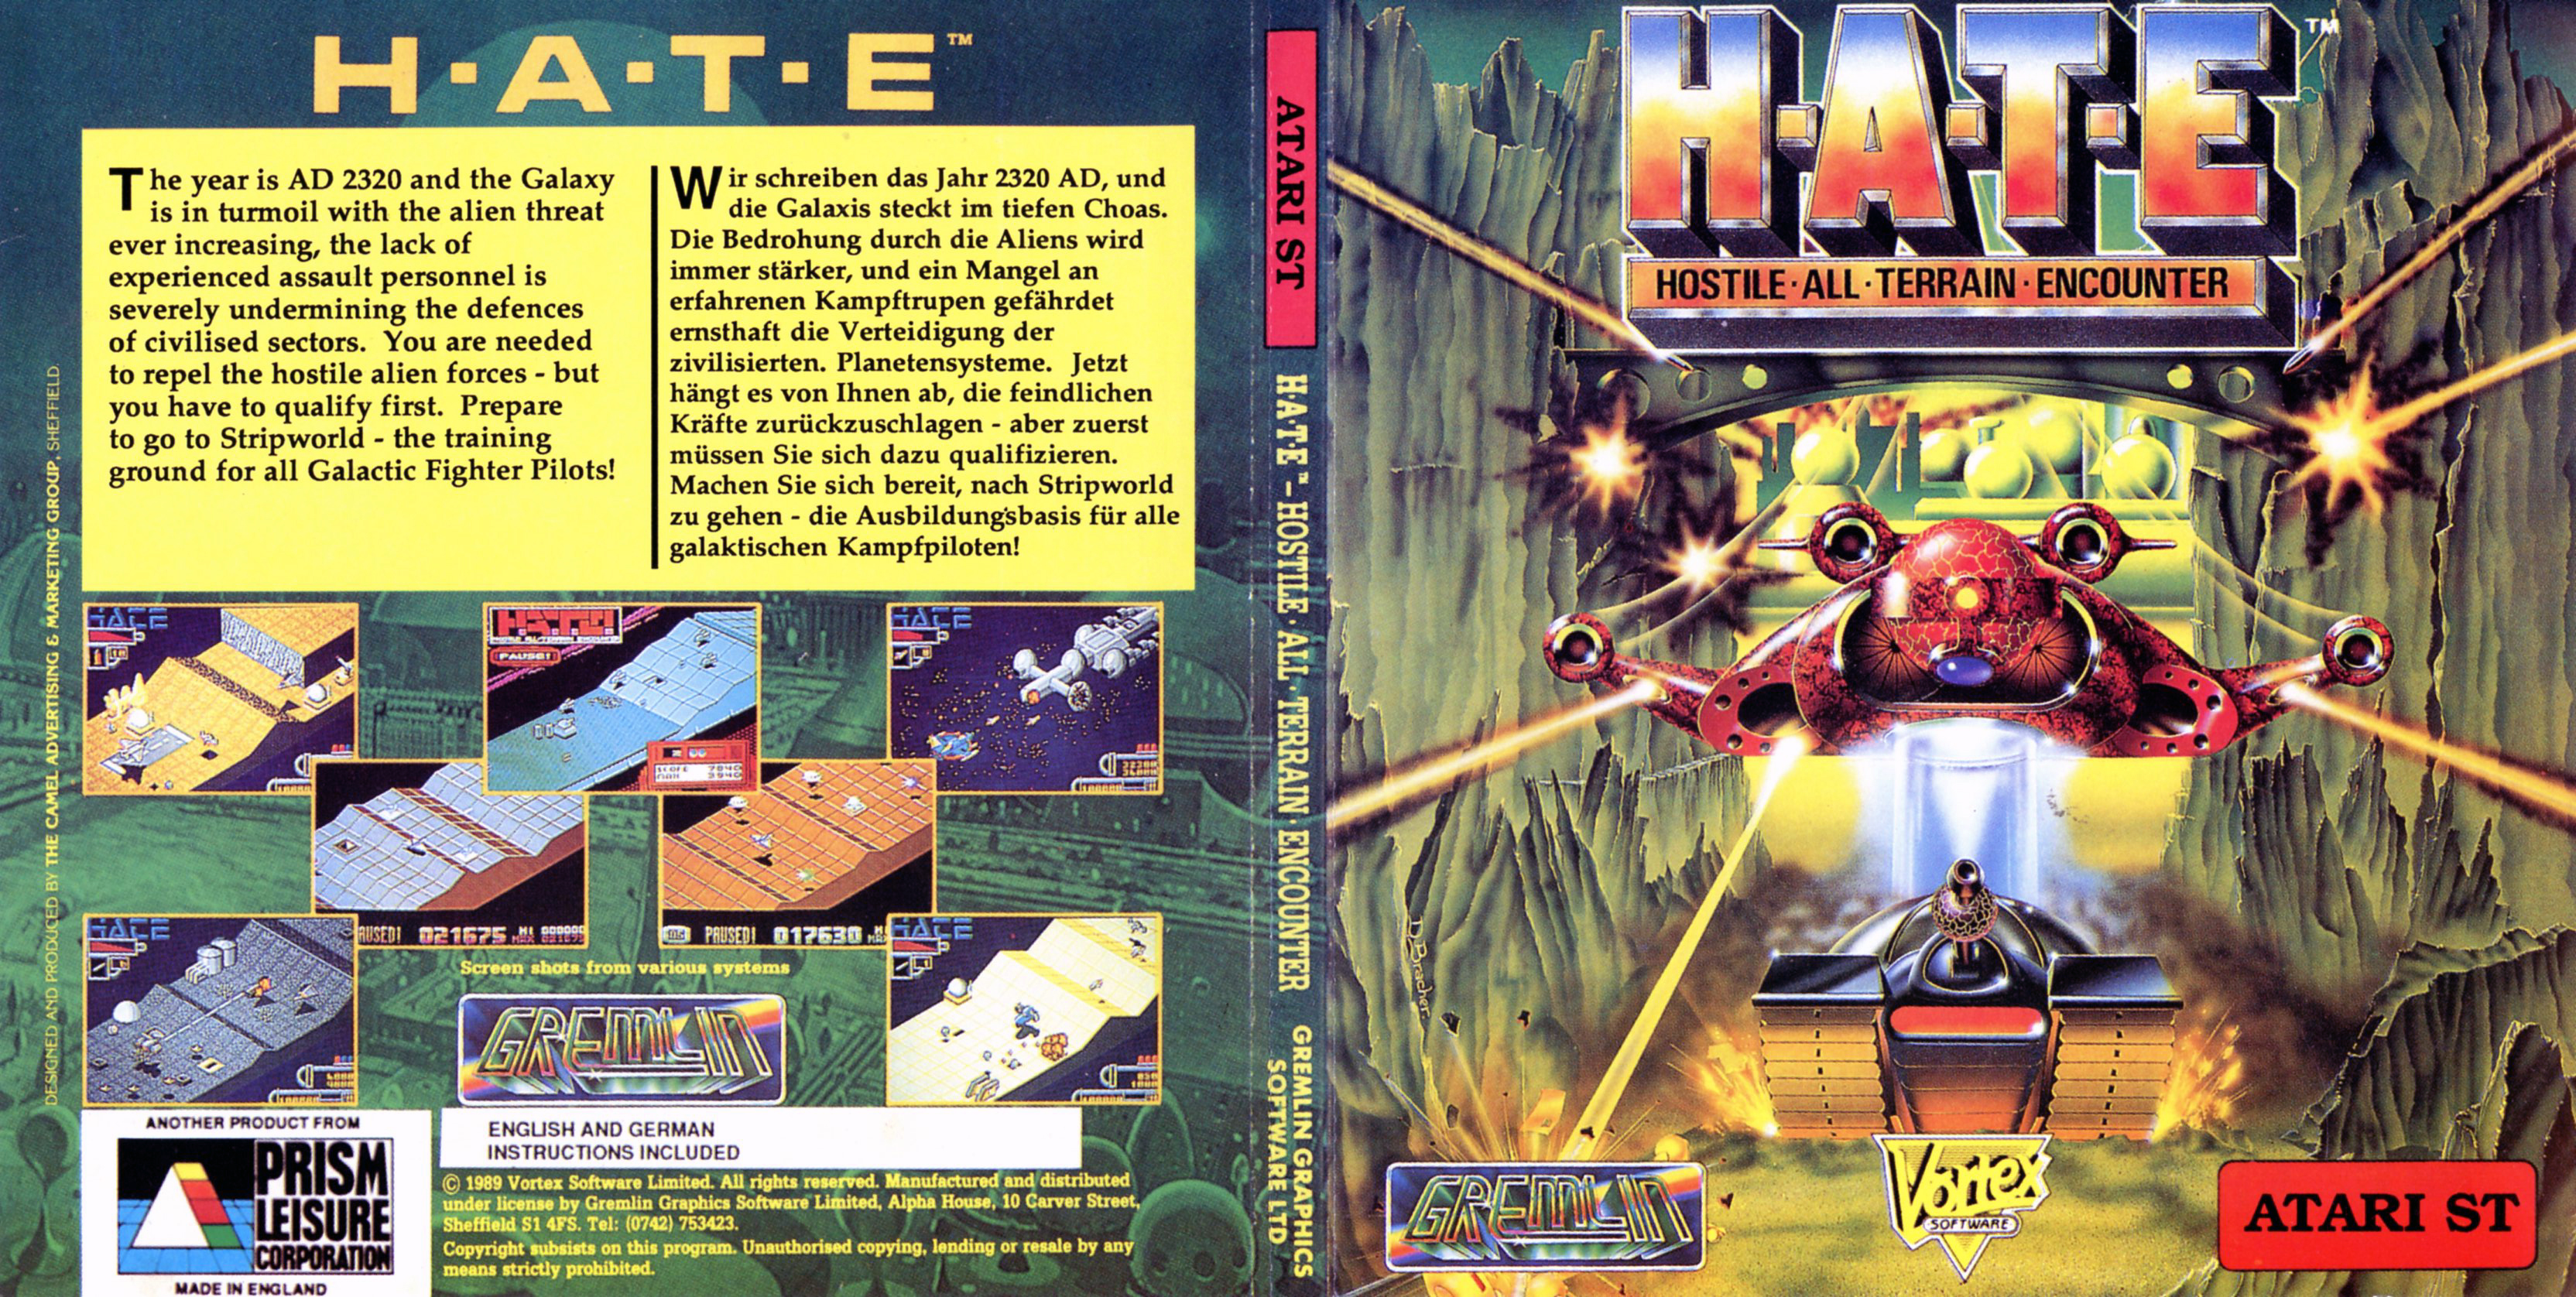 Hostile All Terrain Encounter (HATE) (Atari ST)